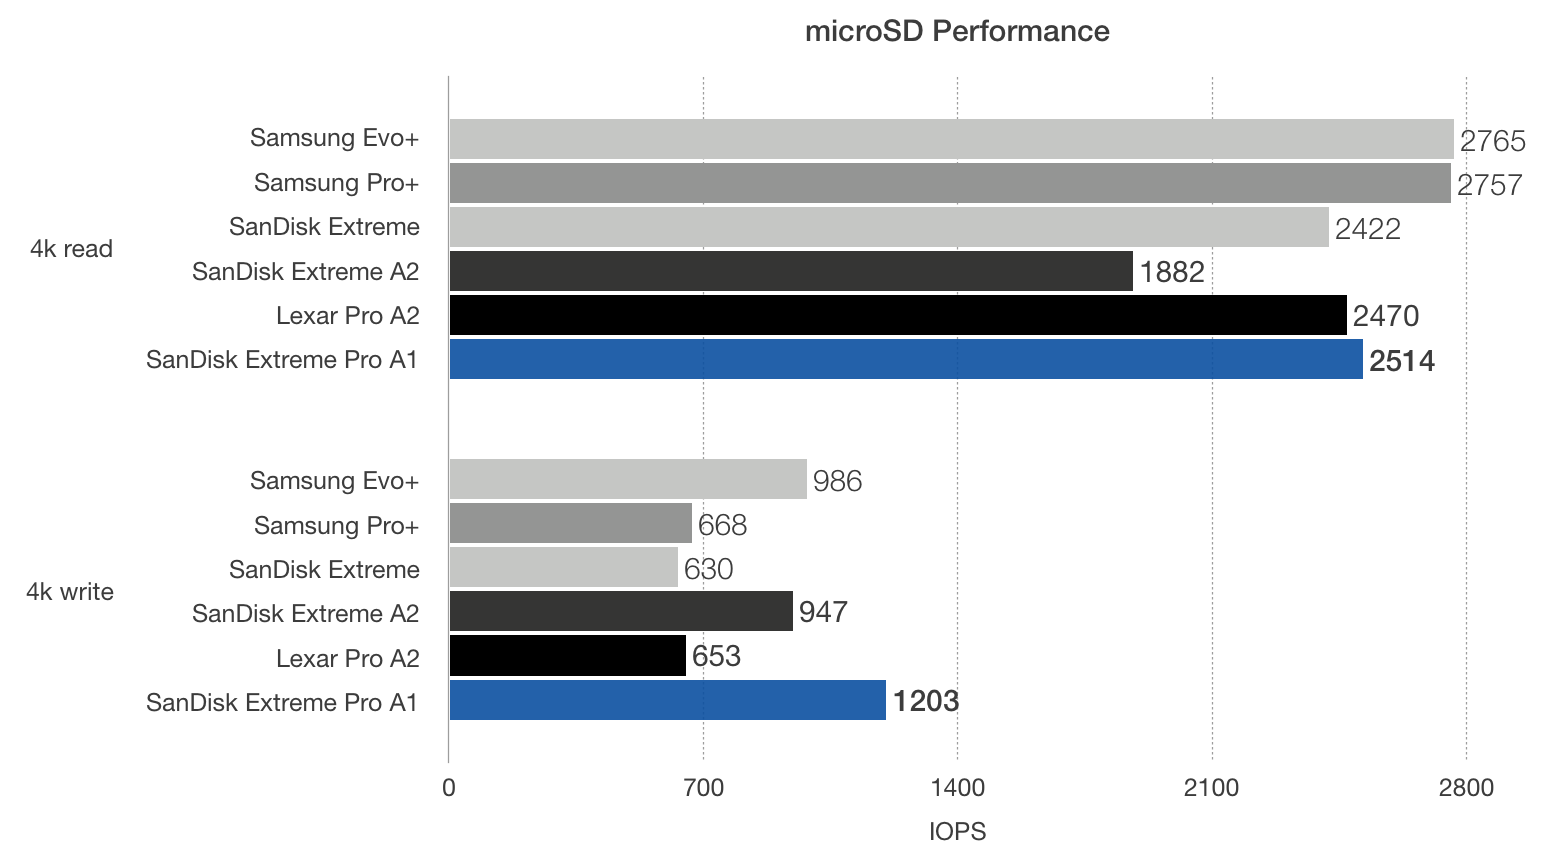 Raspberry Pi microSD card benchmark showing SanDisk Extreme Pro A1 comparison